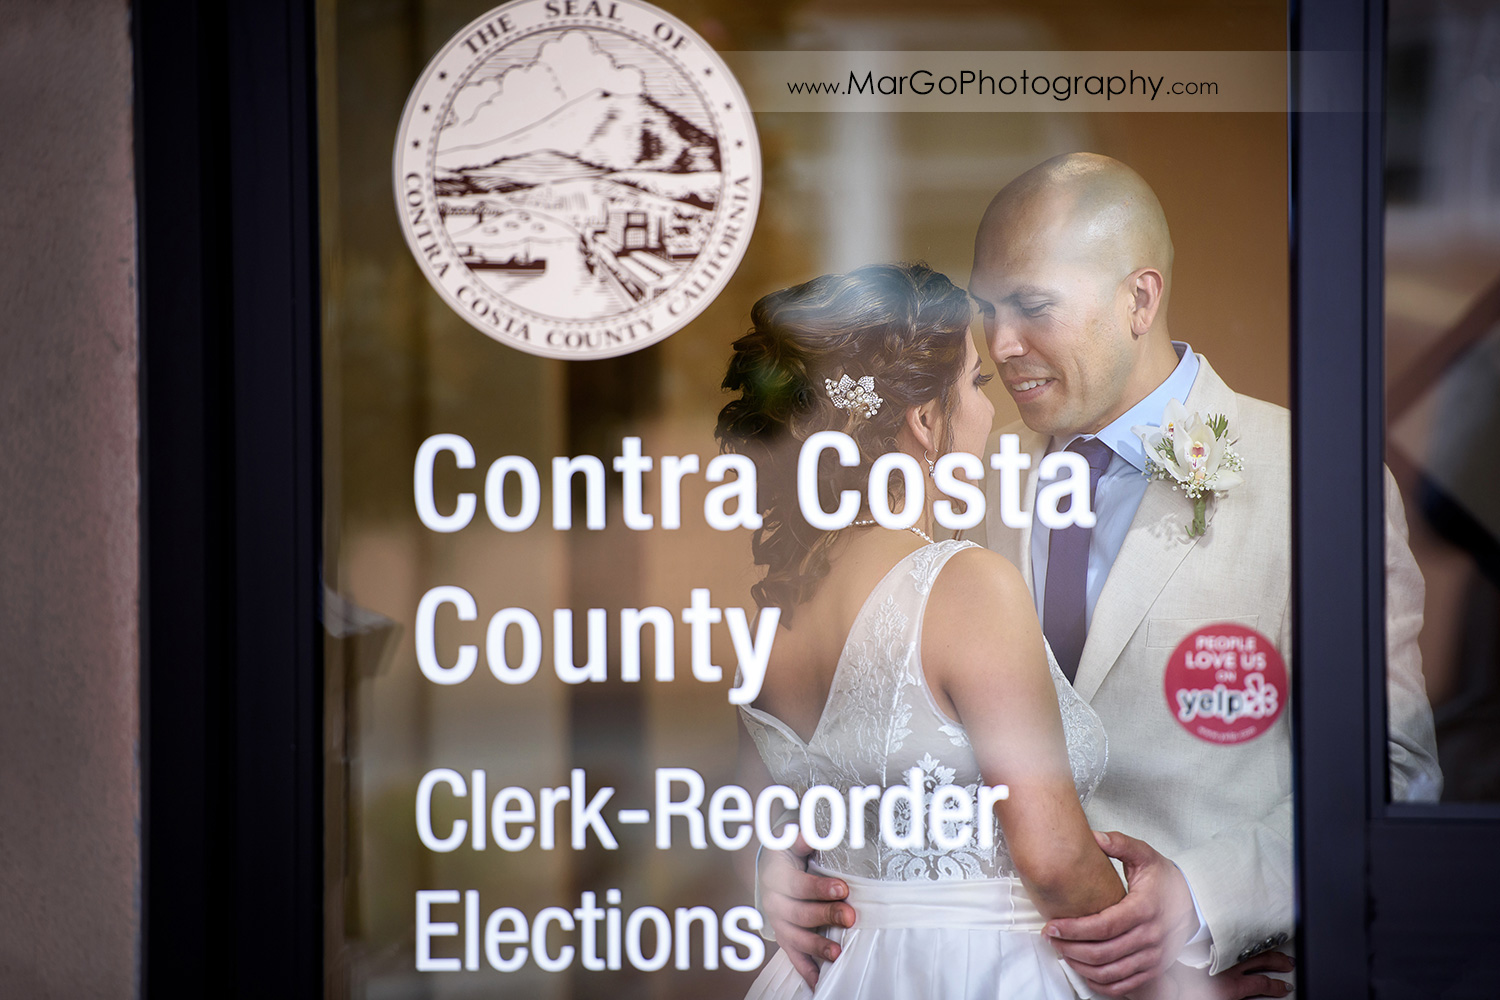 bride and groom before the ceremony at Contra Costa County Clerk-Recorder in Martinez